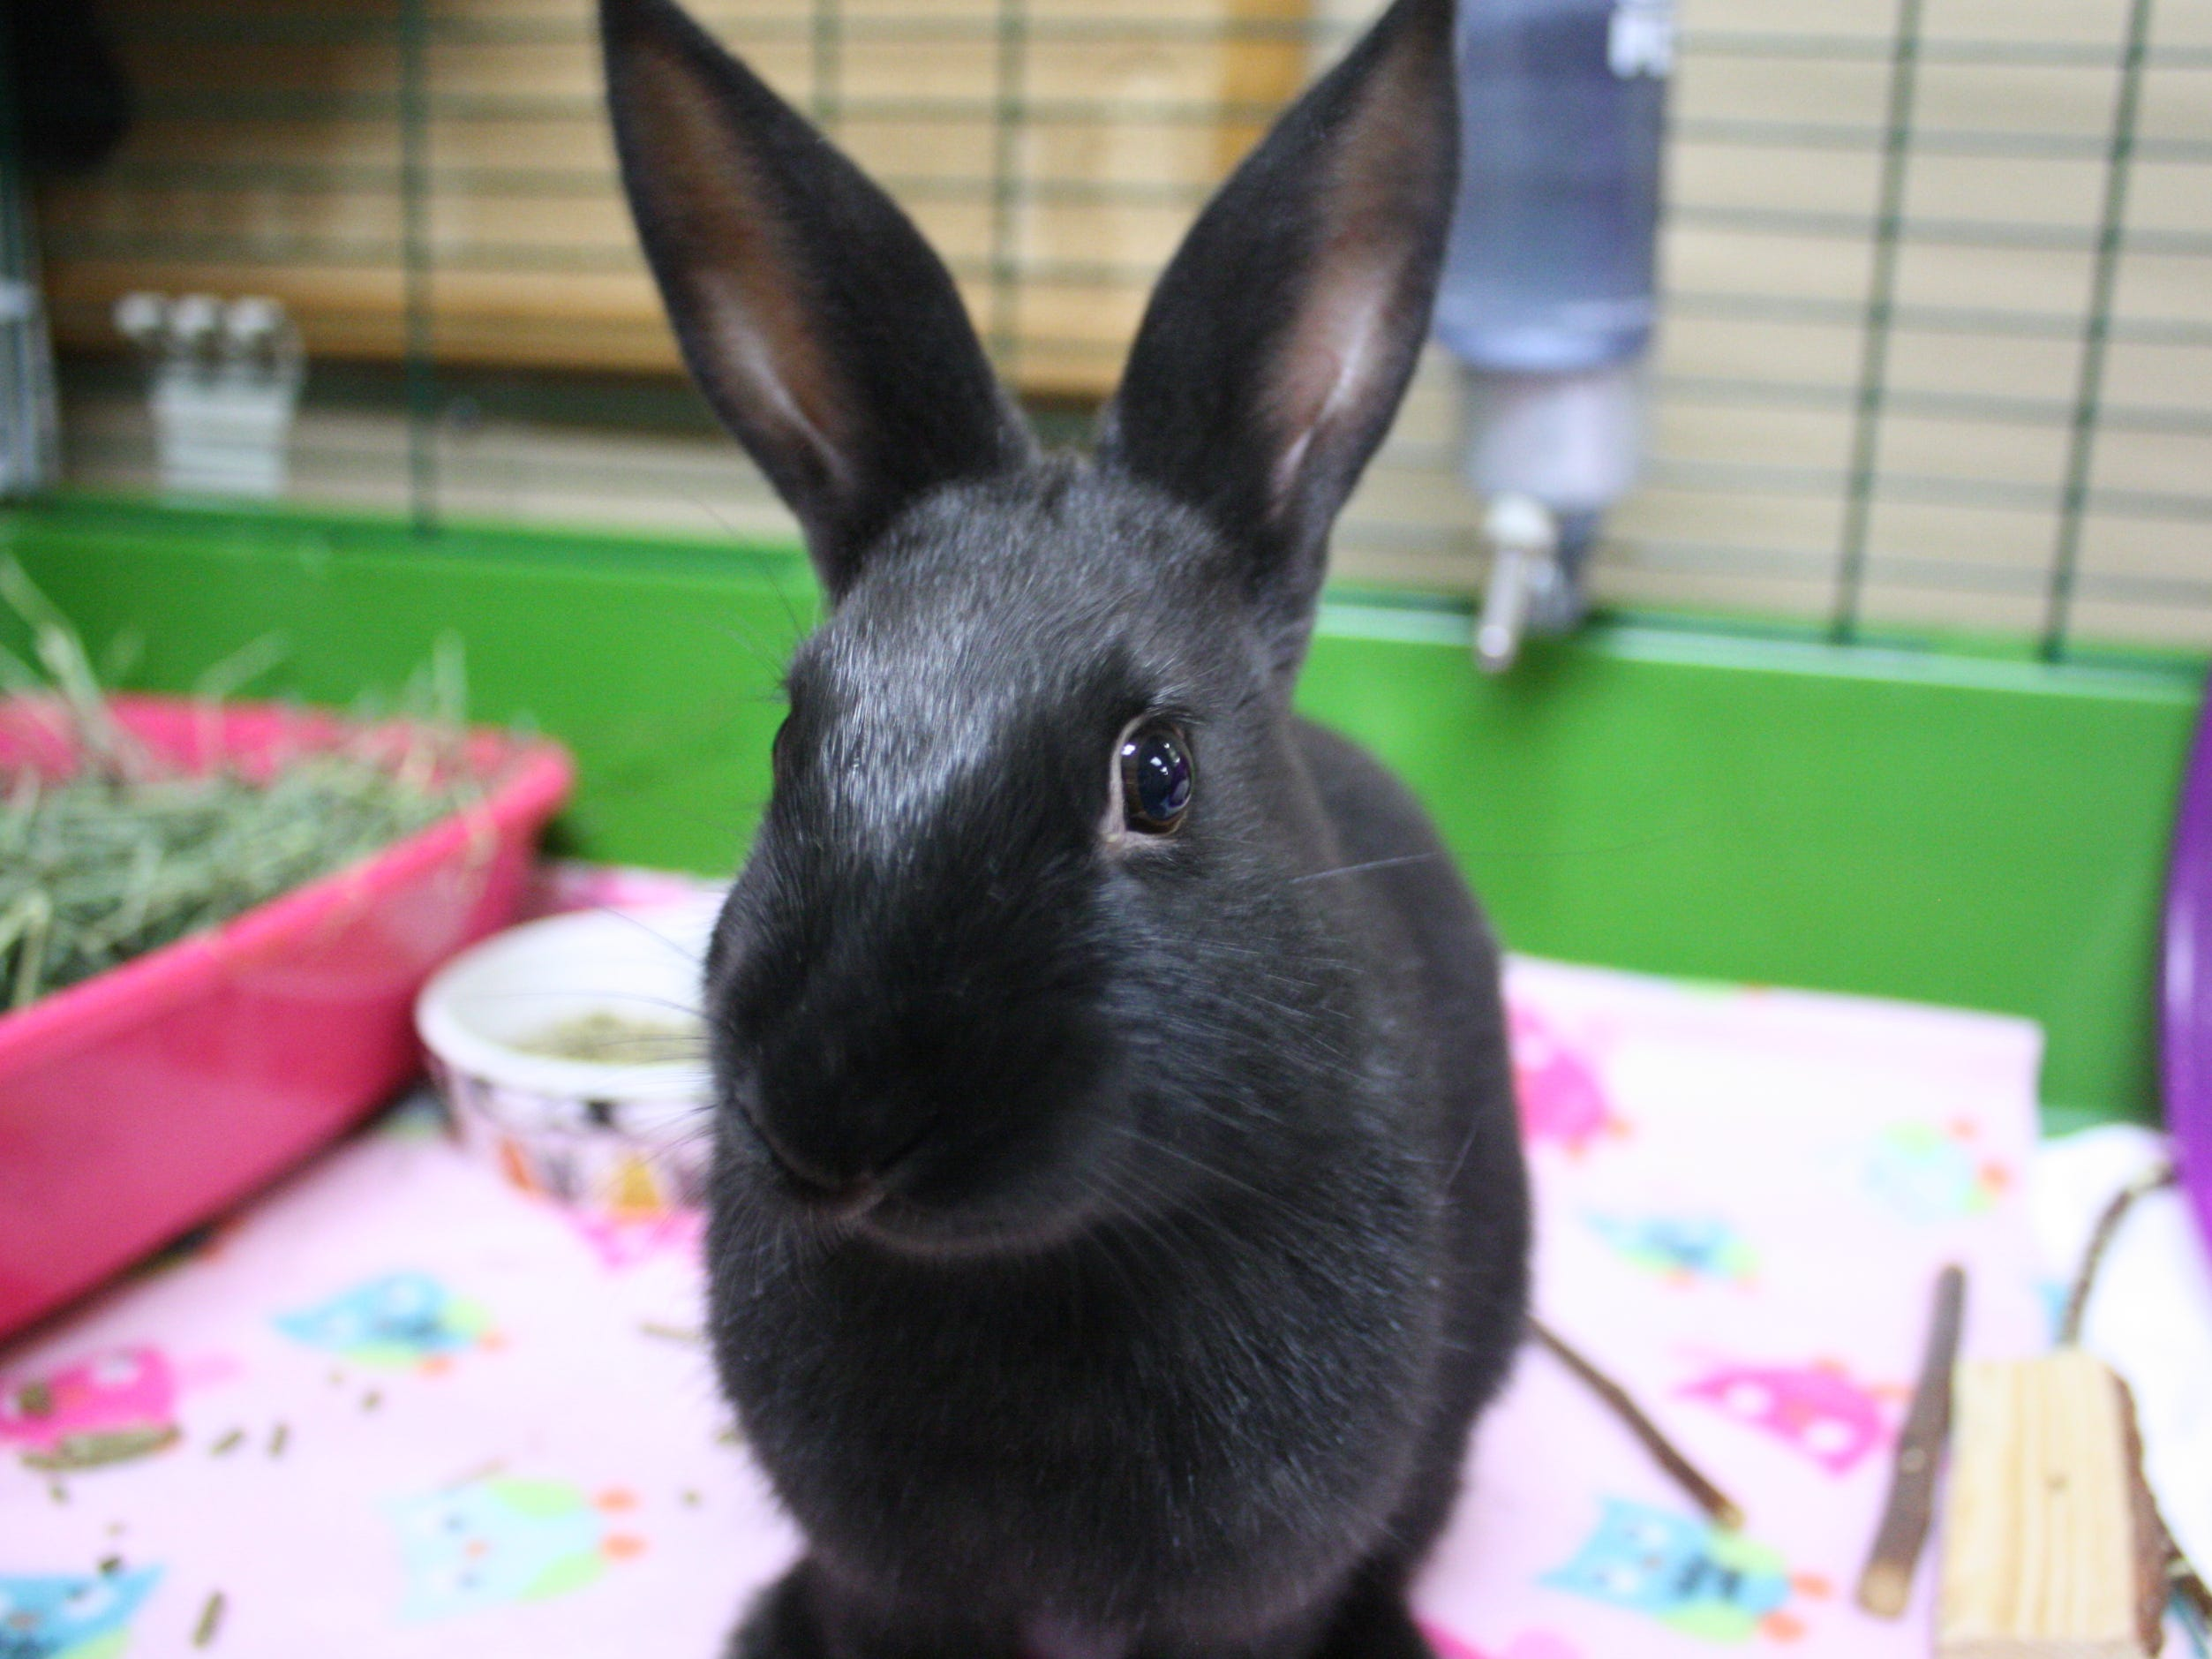 Ebony, a 2-month-old American rabbit, is cute and excited for her new home.